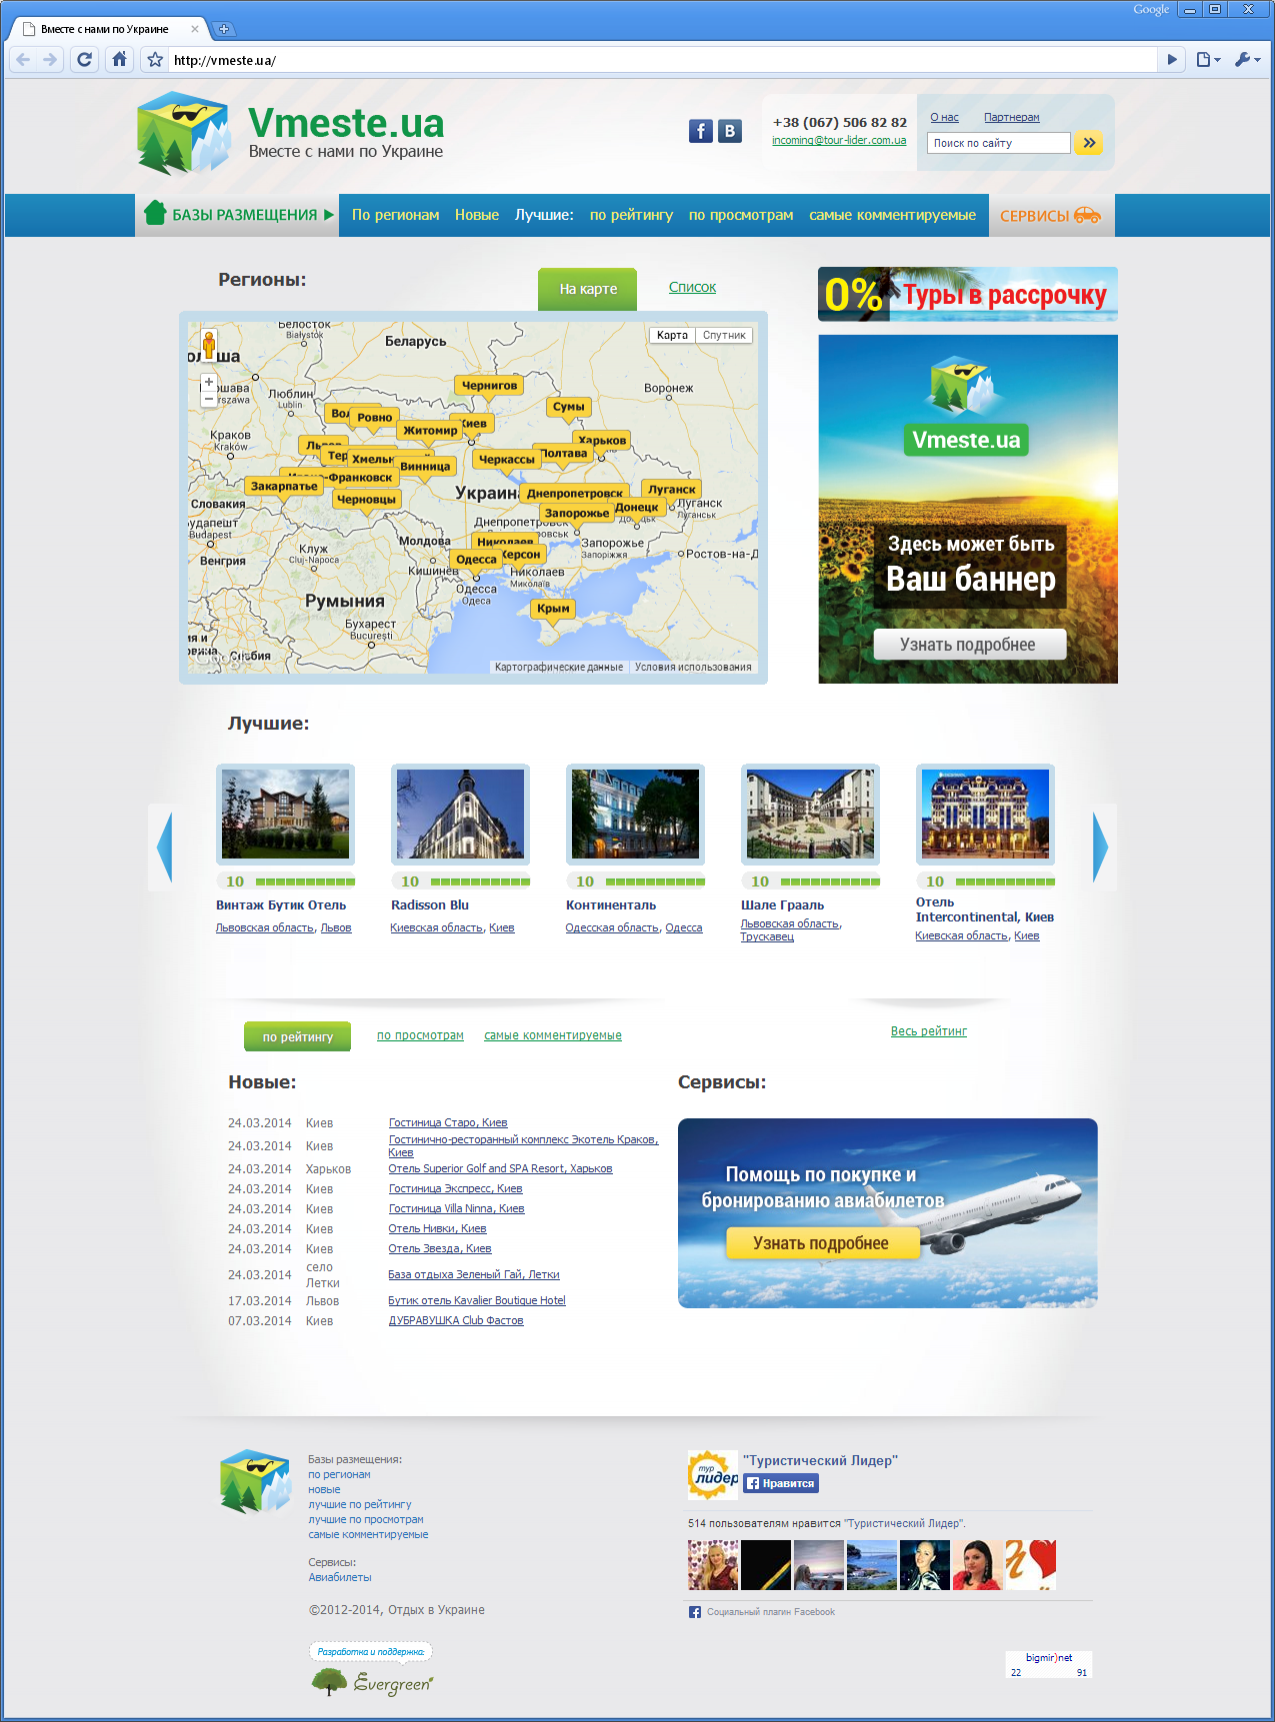 Vmeste.ua conceived as a portal where you can find and see any hotel in Ukraine, and order a number of services, from booking accommodation to tours in different regions of Ukraine. | Evergreen projects | Evergreen projects 4